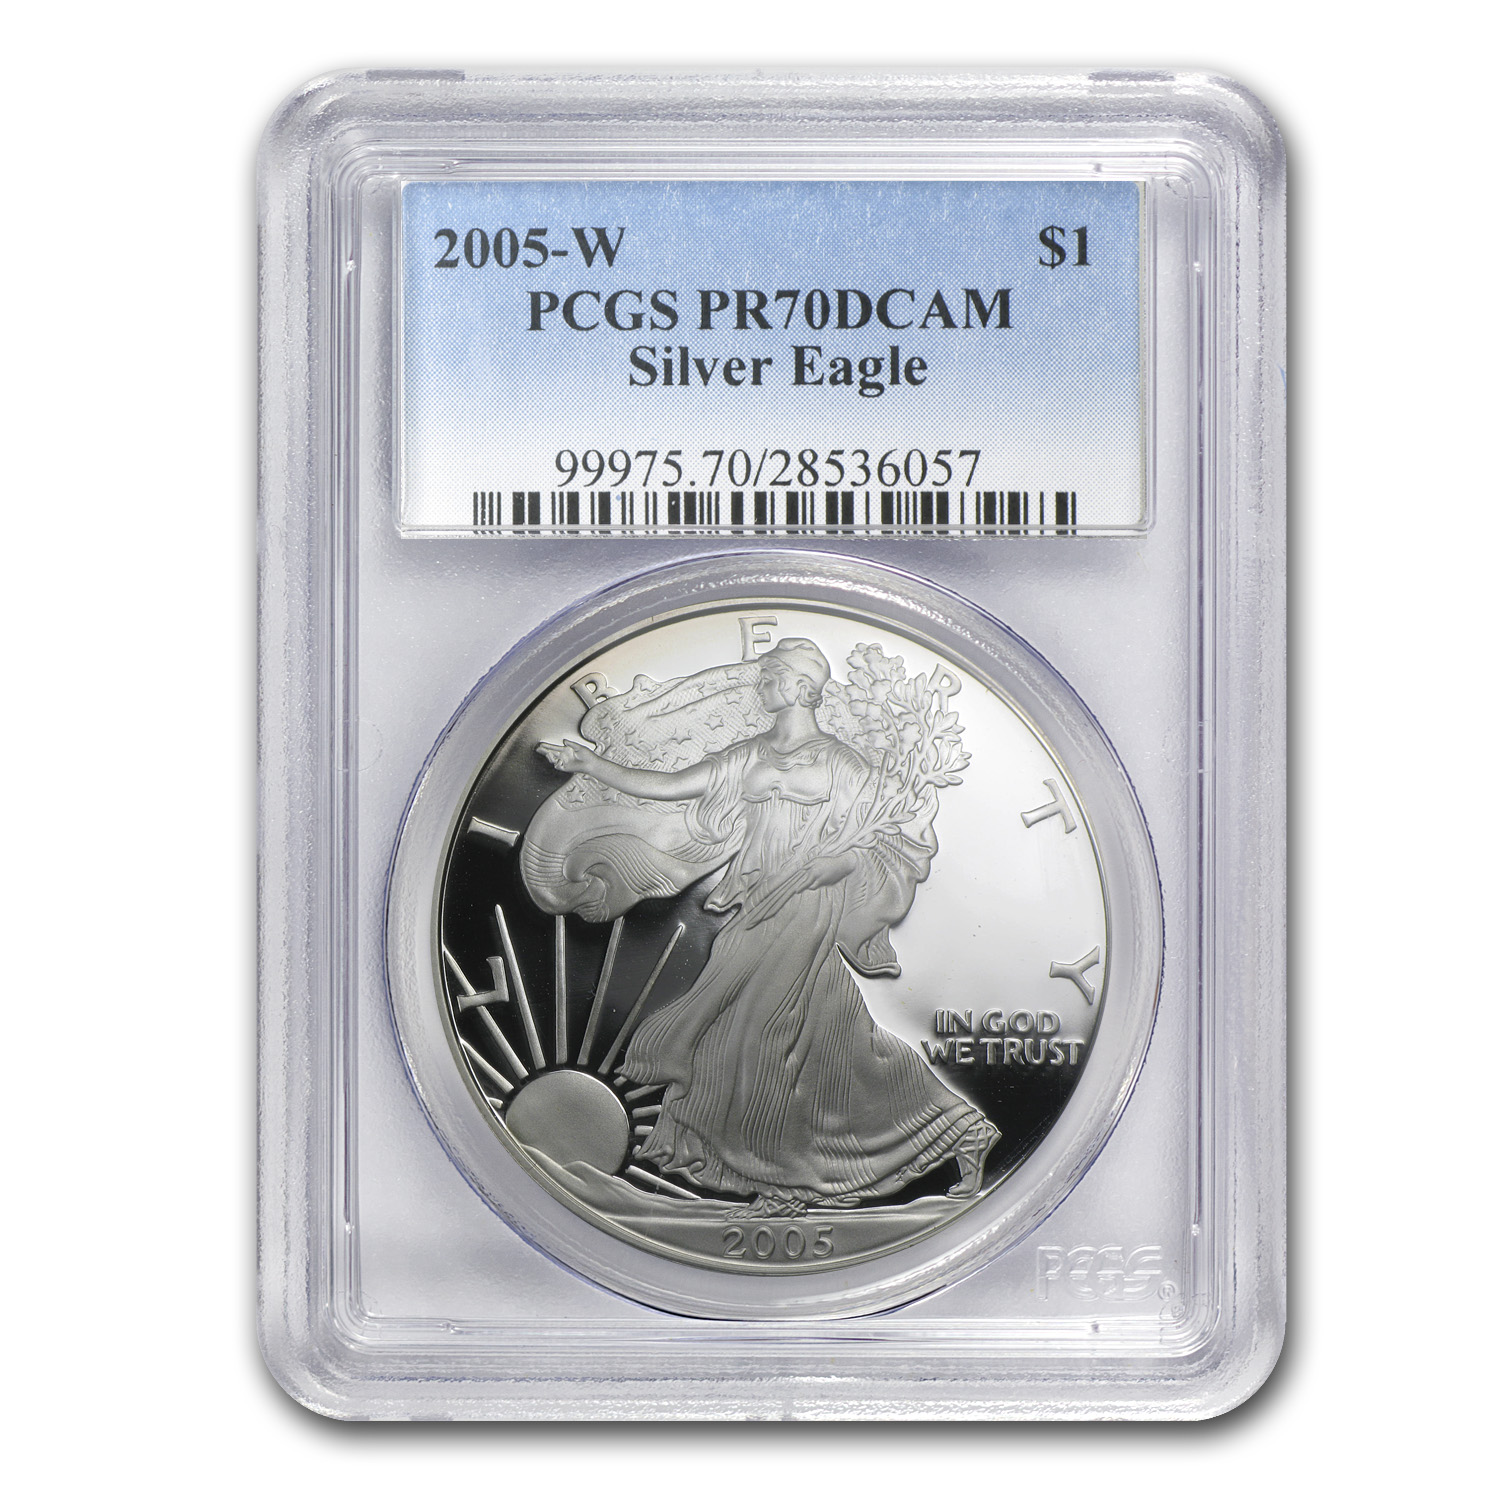 2005-W Proof Silver American Eagle PR-70 PCGS